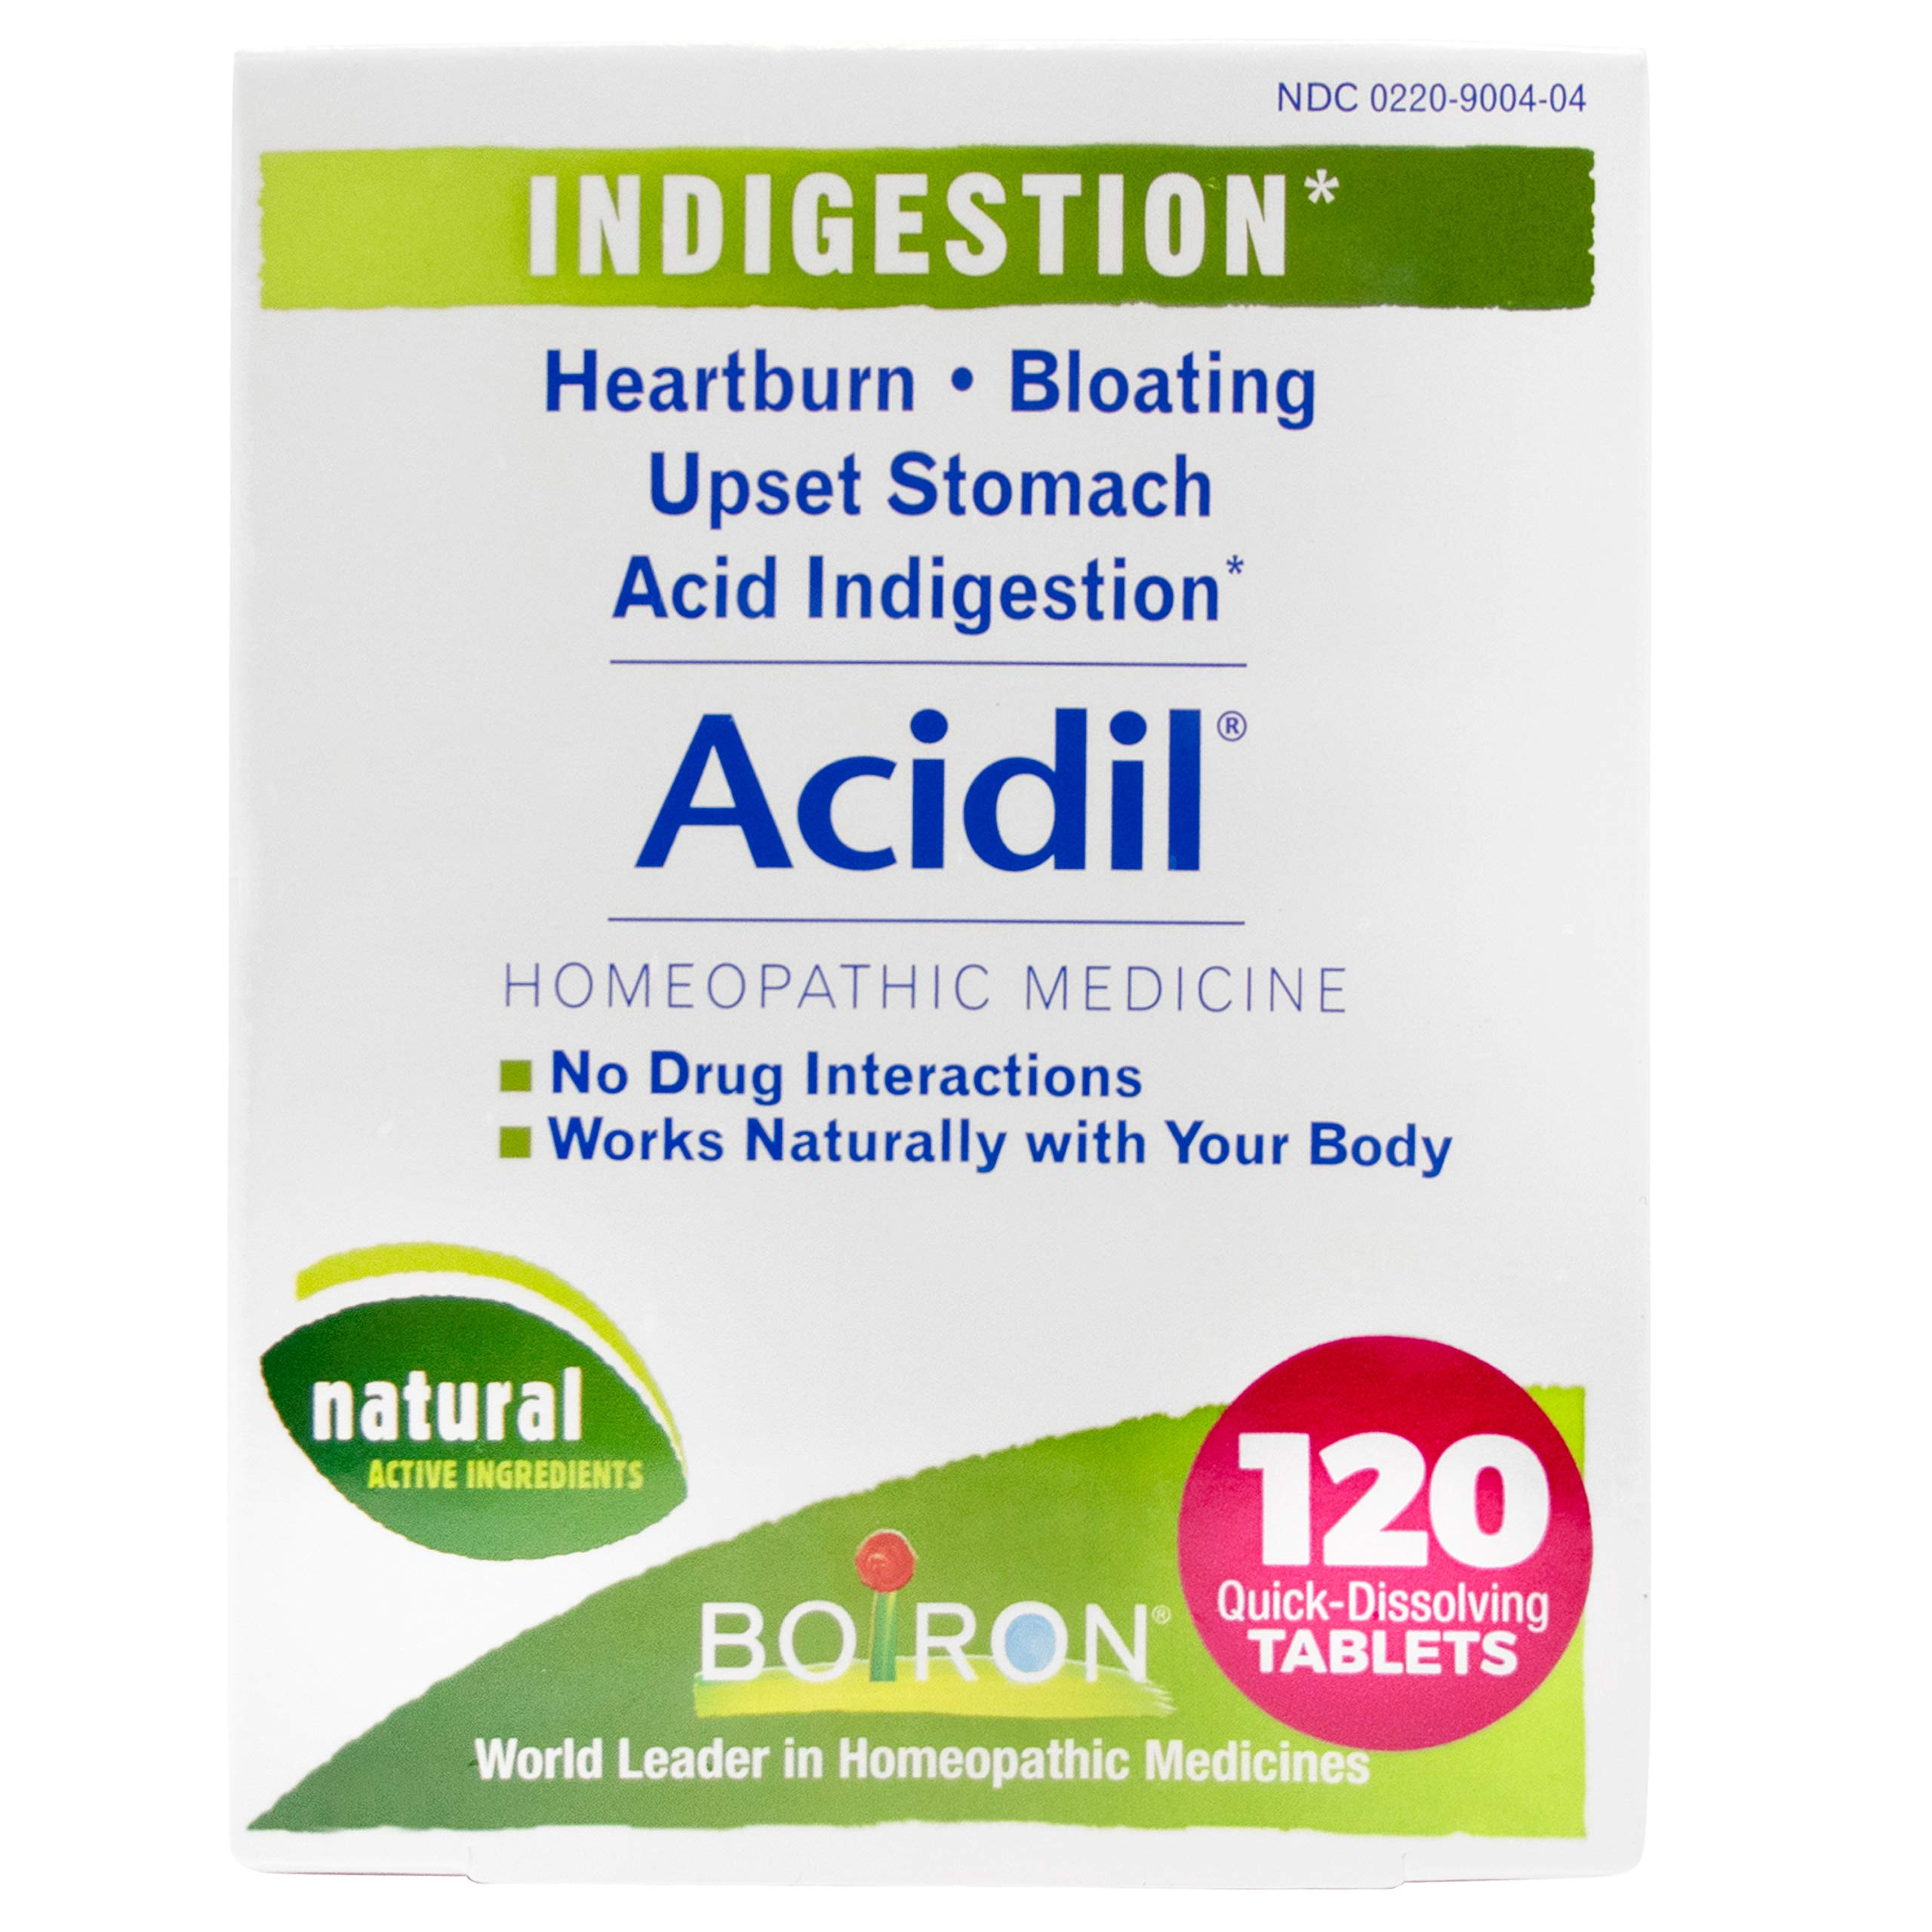 Boiron Acidil Indigestion Medicine for Heartburn and Acid Reflux by Boiron